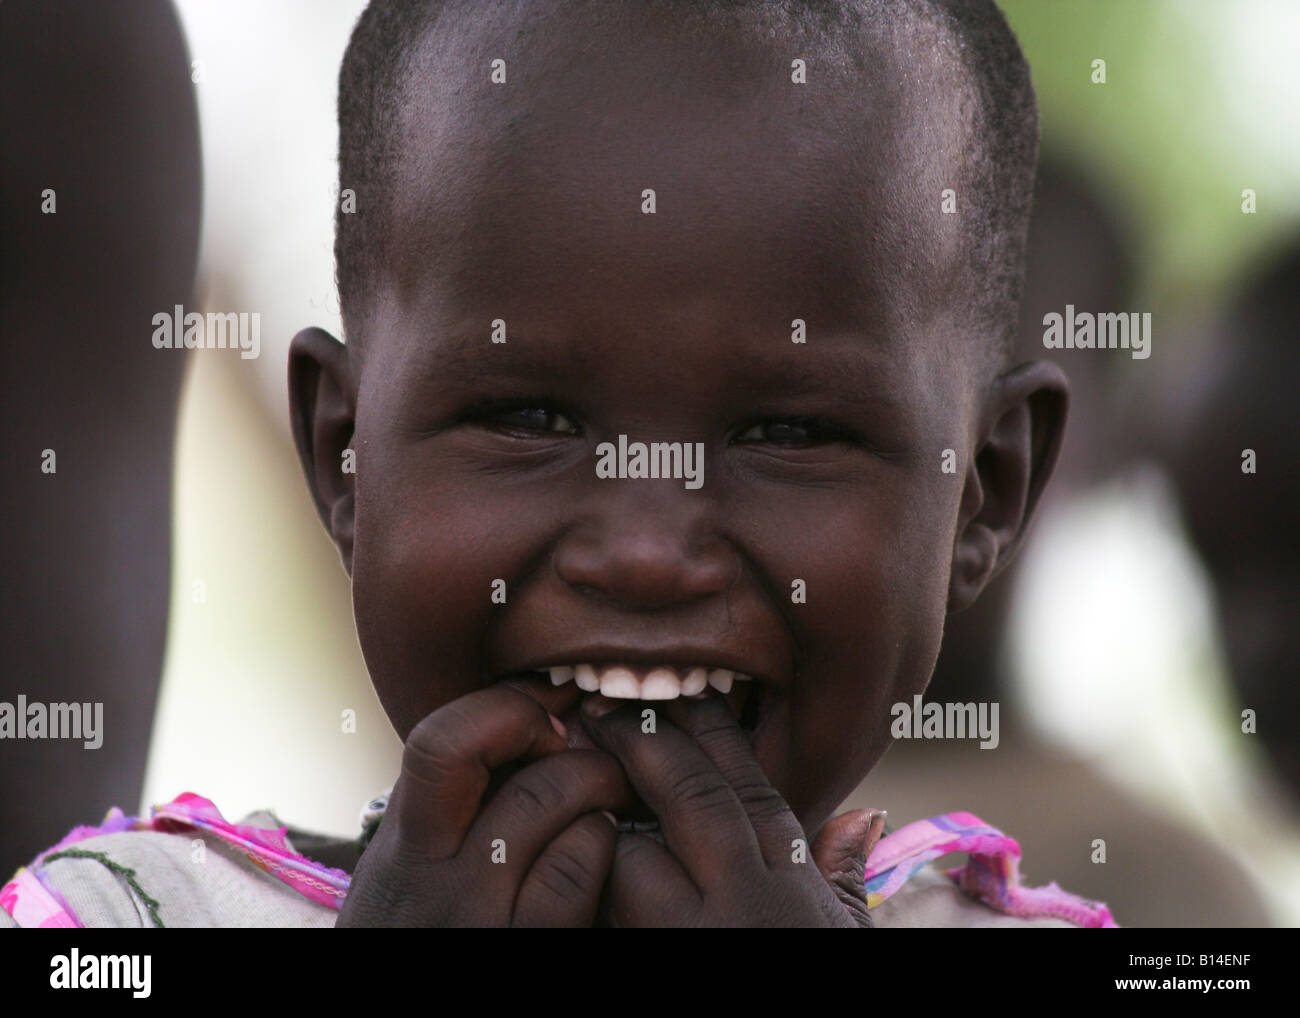 A Dinka girl in Rumbek, South Sudan joyfully looks the camera in the eye - this is her very first photo. - Stock Image